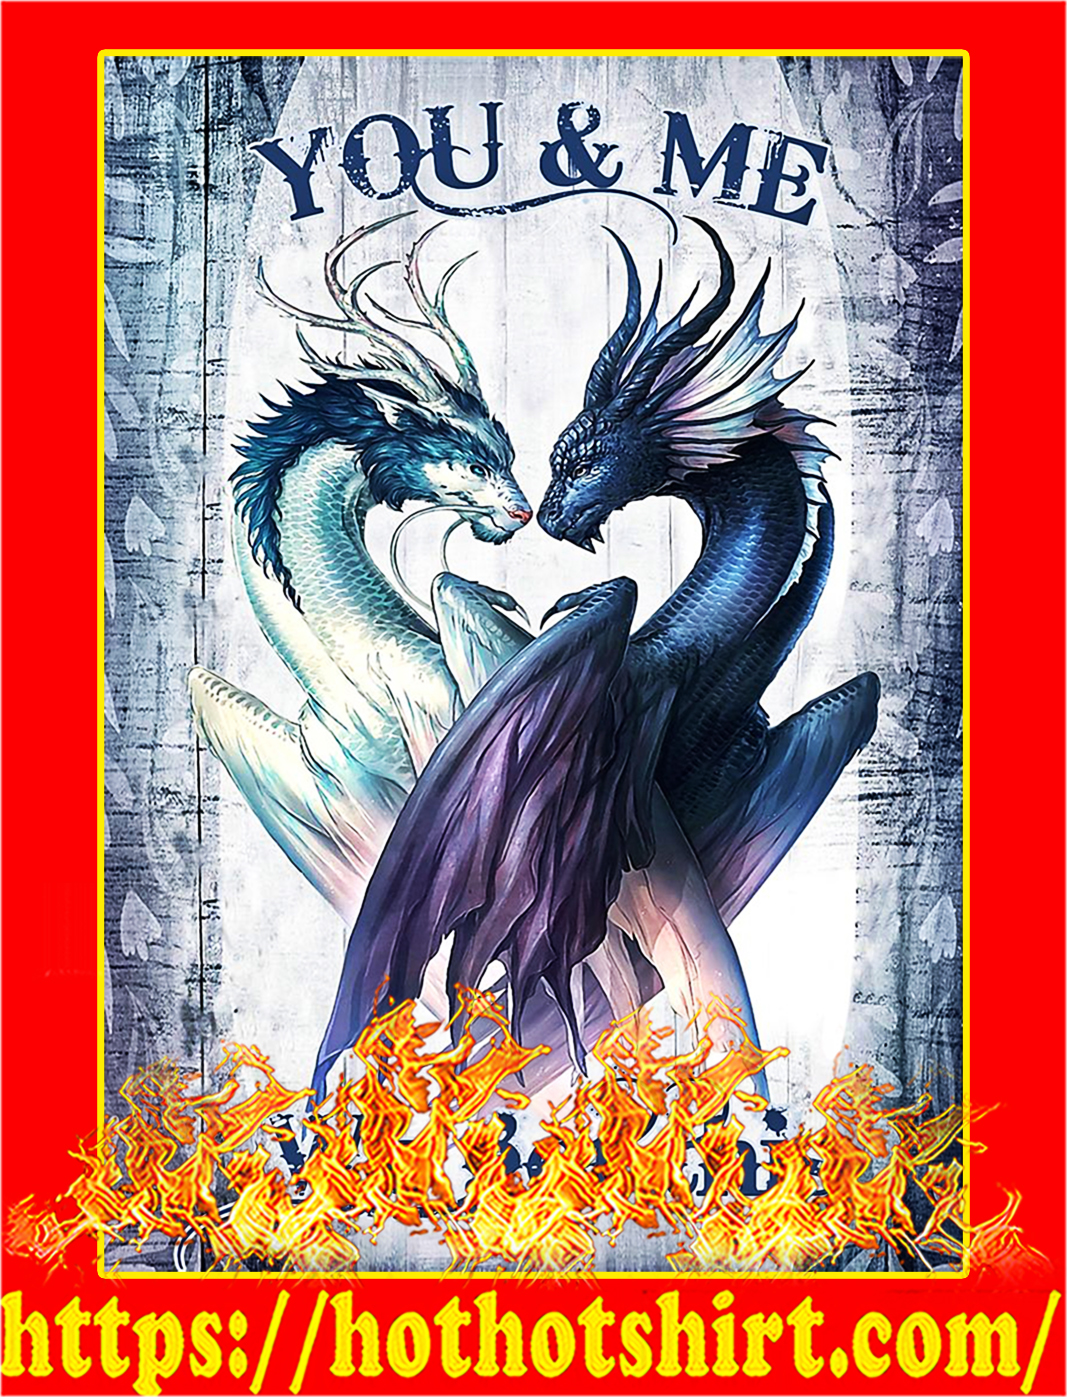 You and me we got this dragon poster - A1